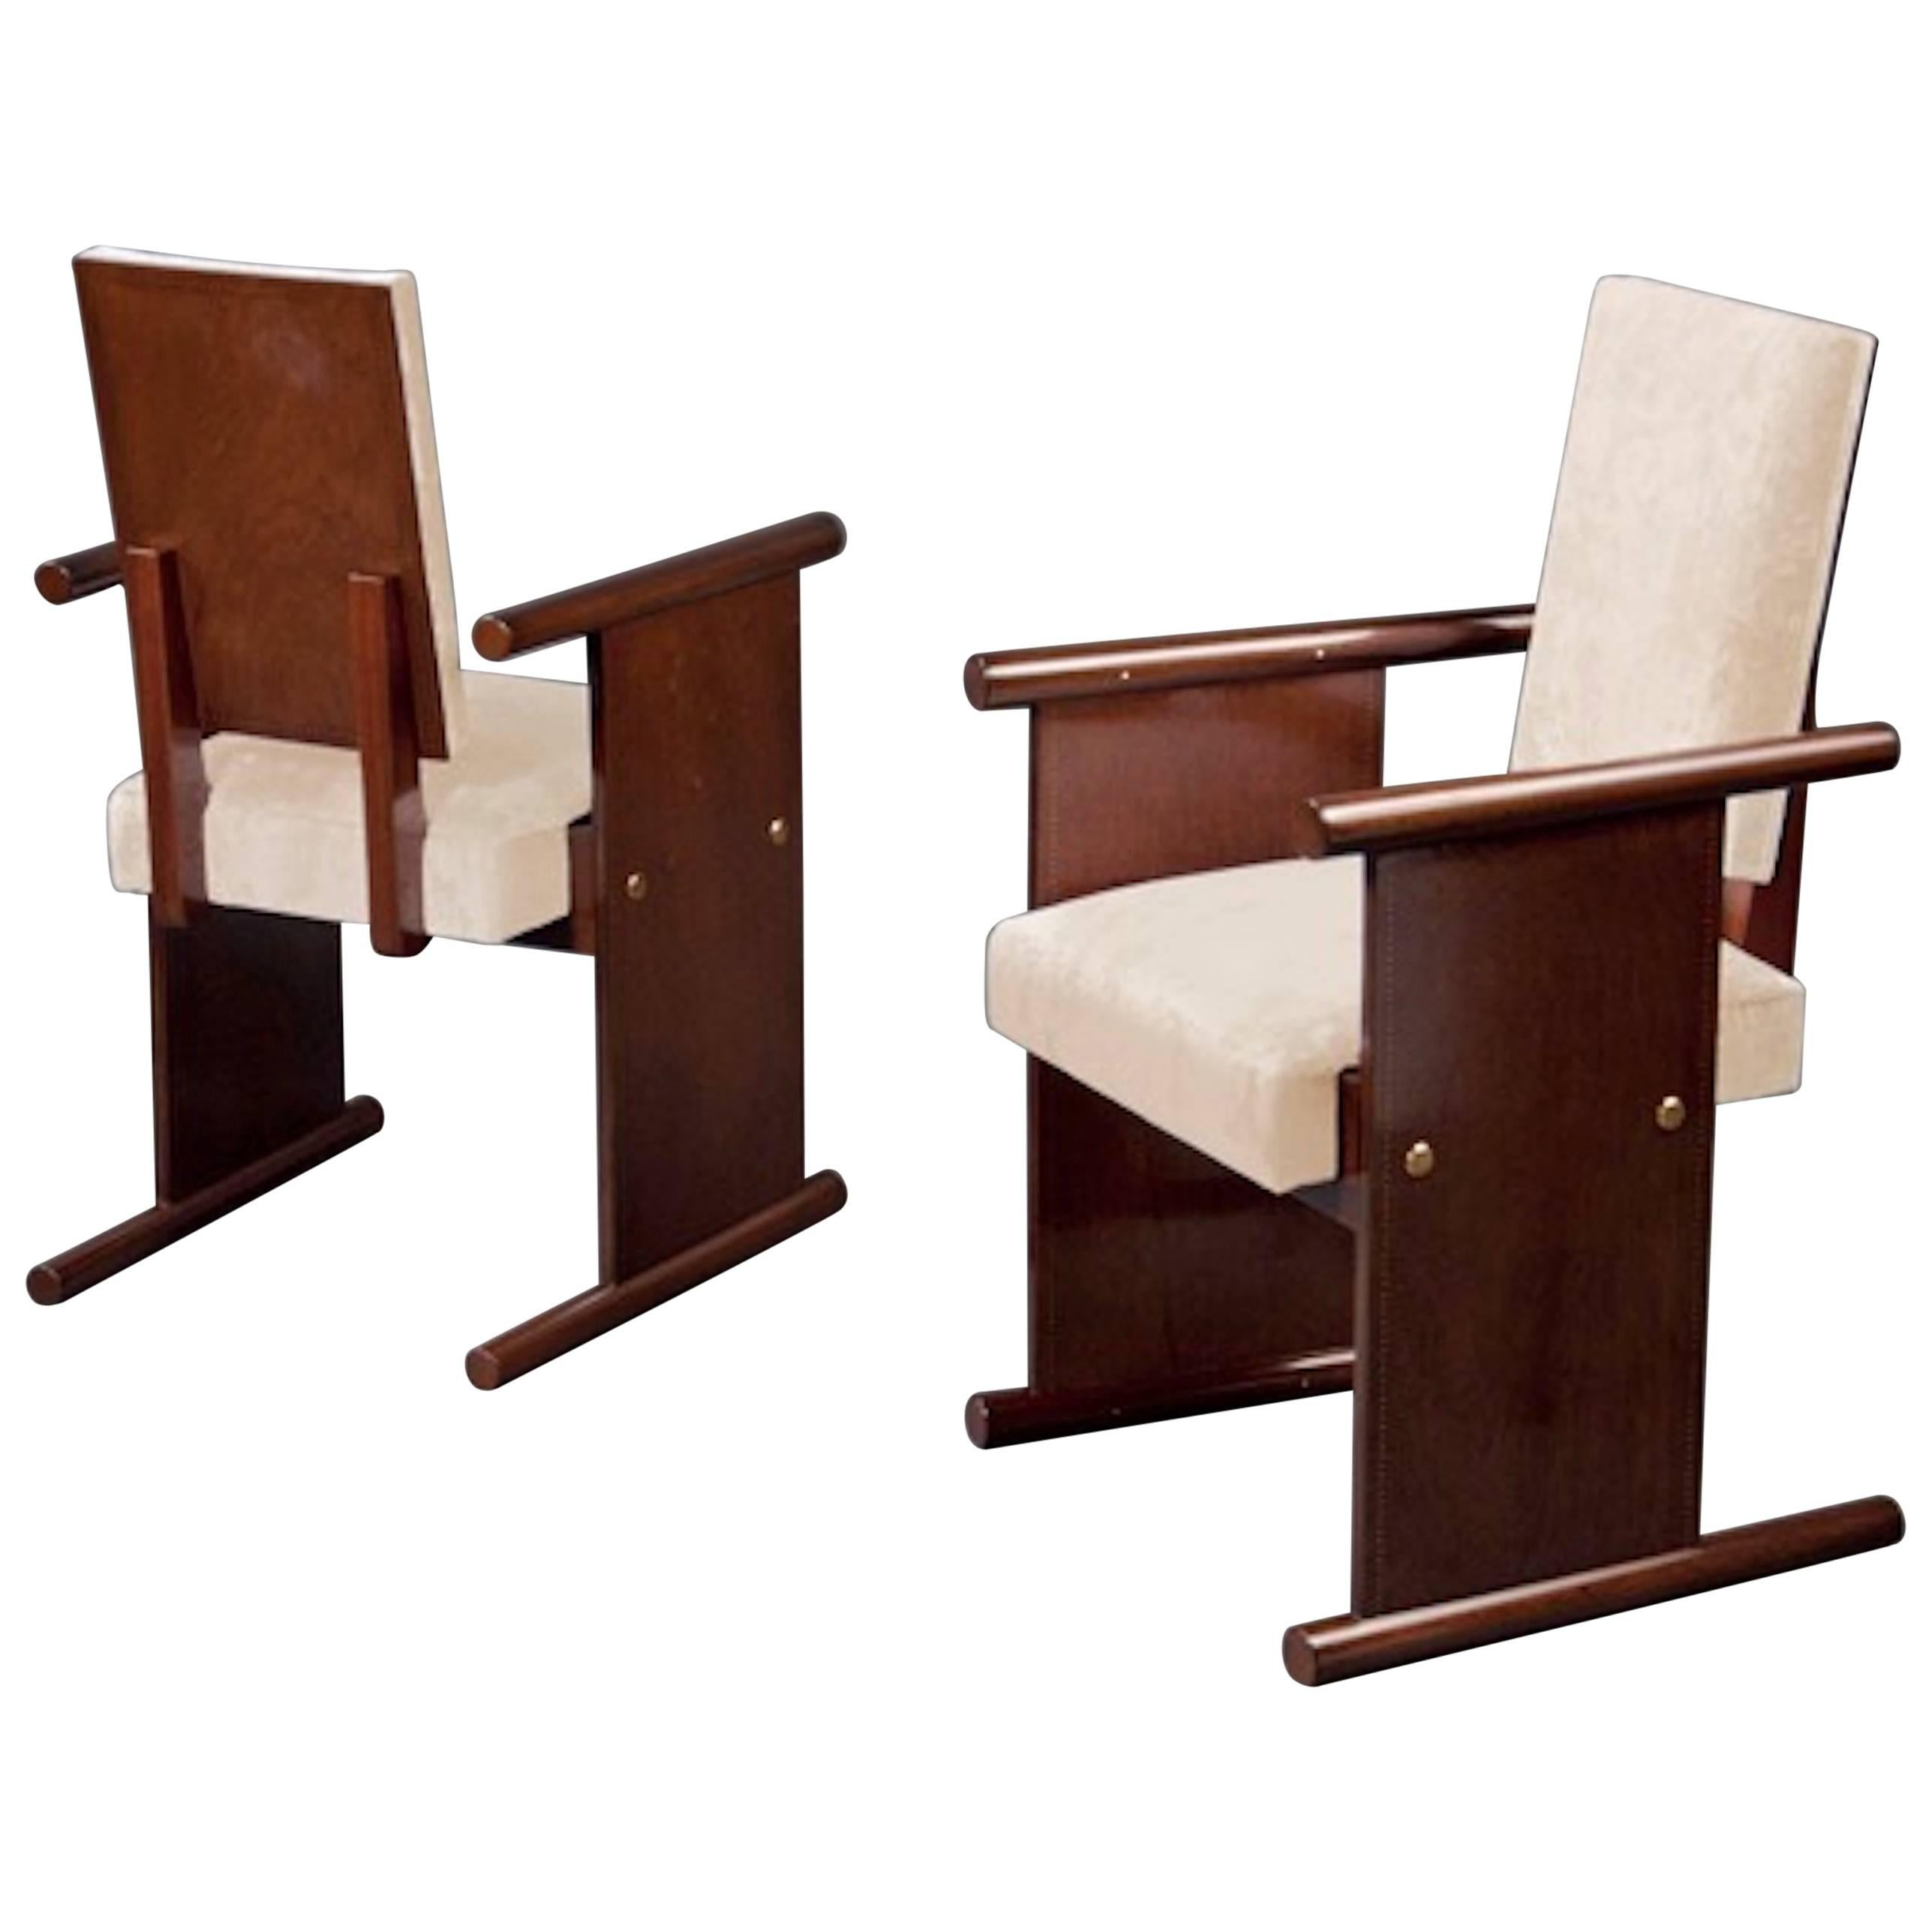 Pair of Armchairs by André Sornay, France, Lyon, circa 1935